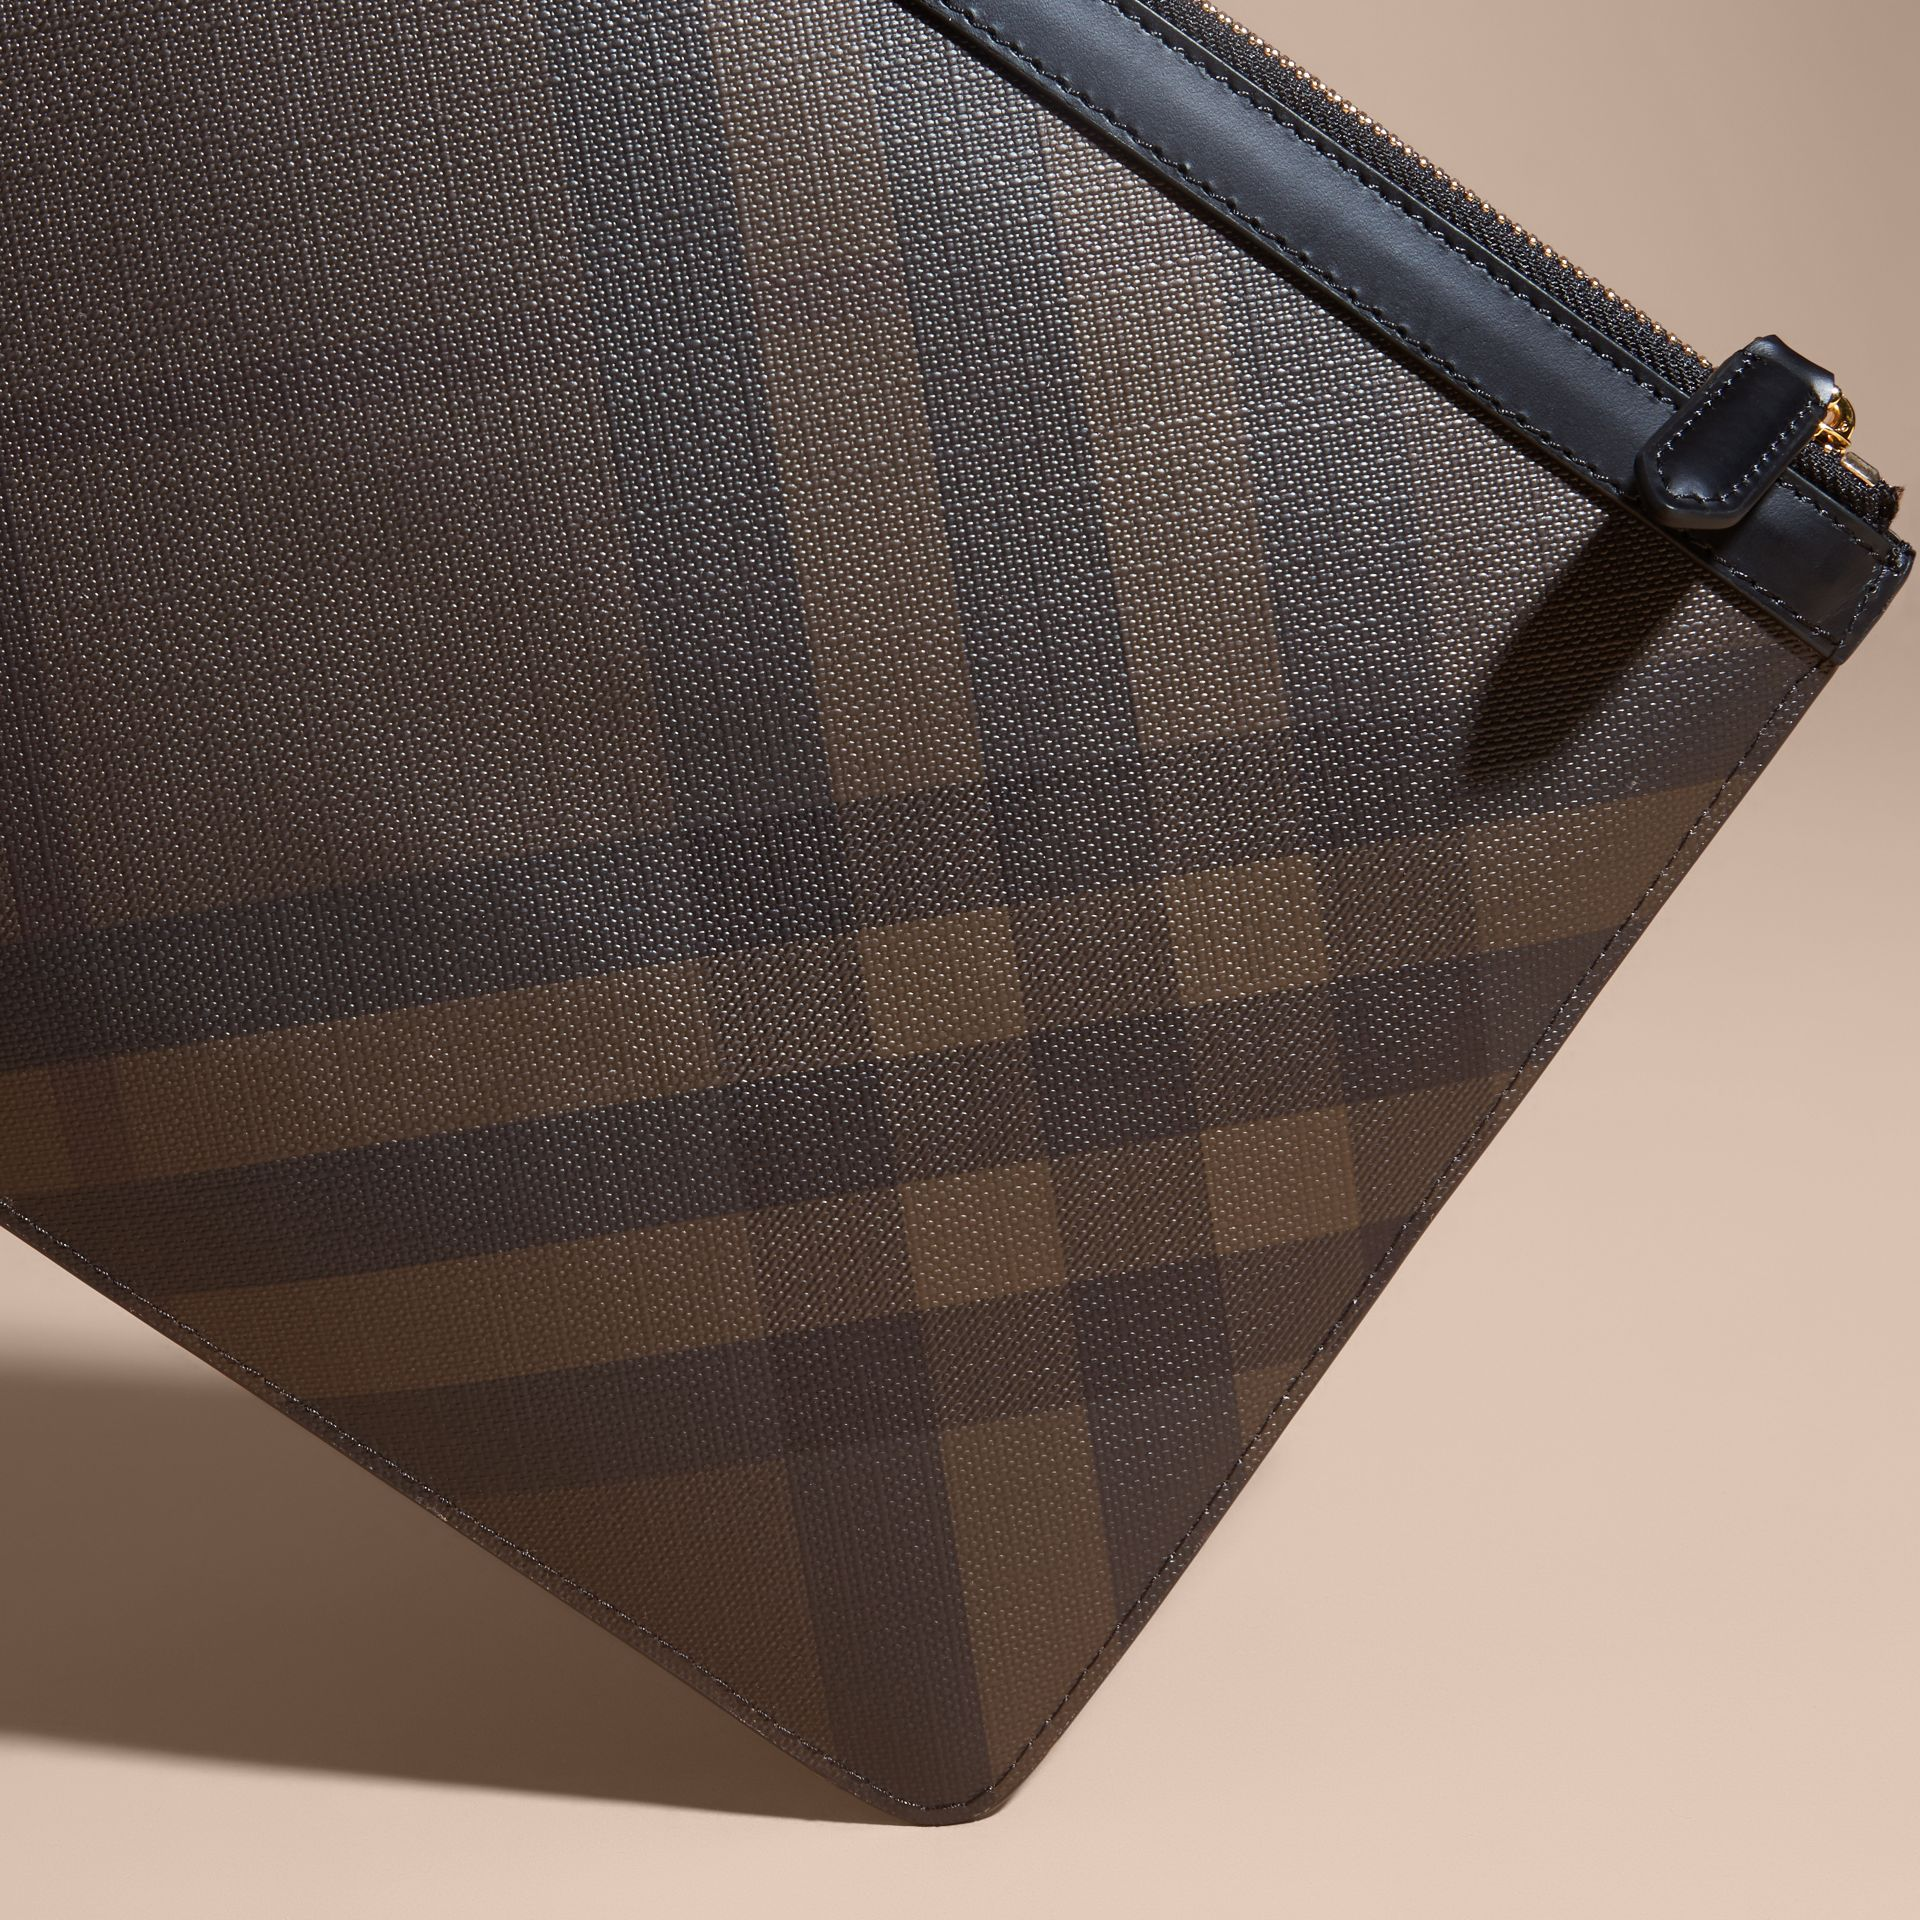 Zipped London Check Pouch in Chocolate/black - Men | Burberry - gallery image 4